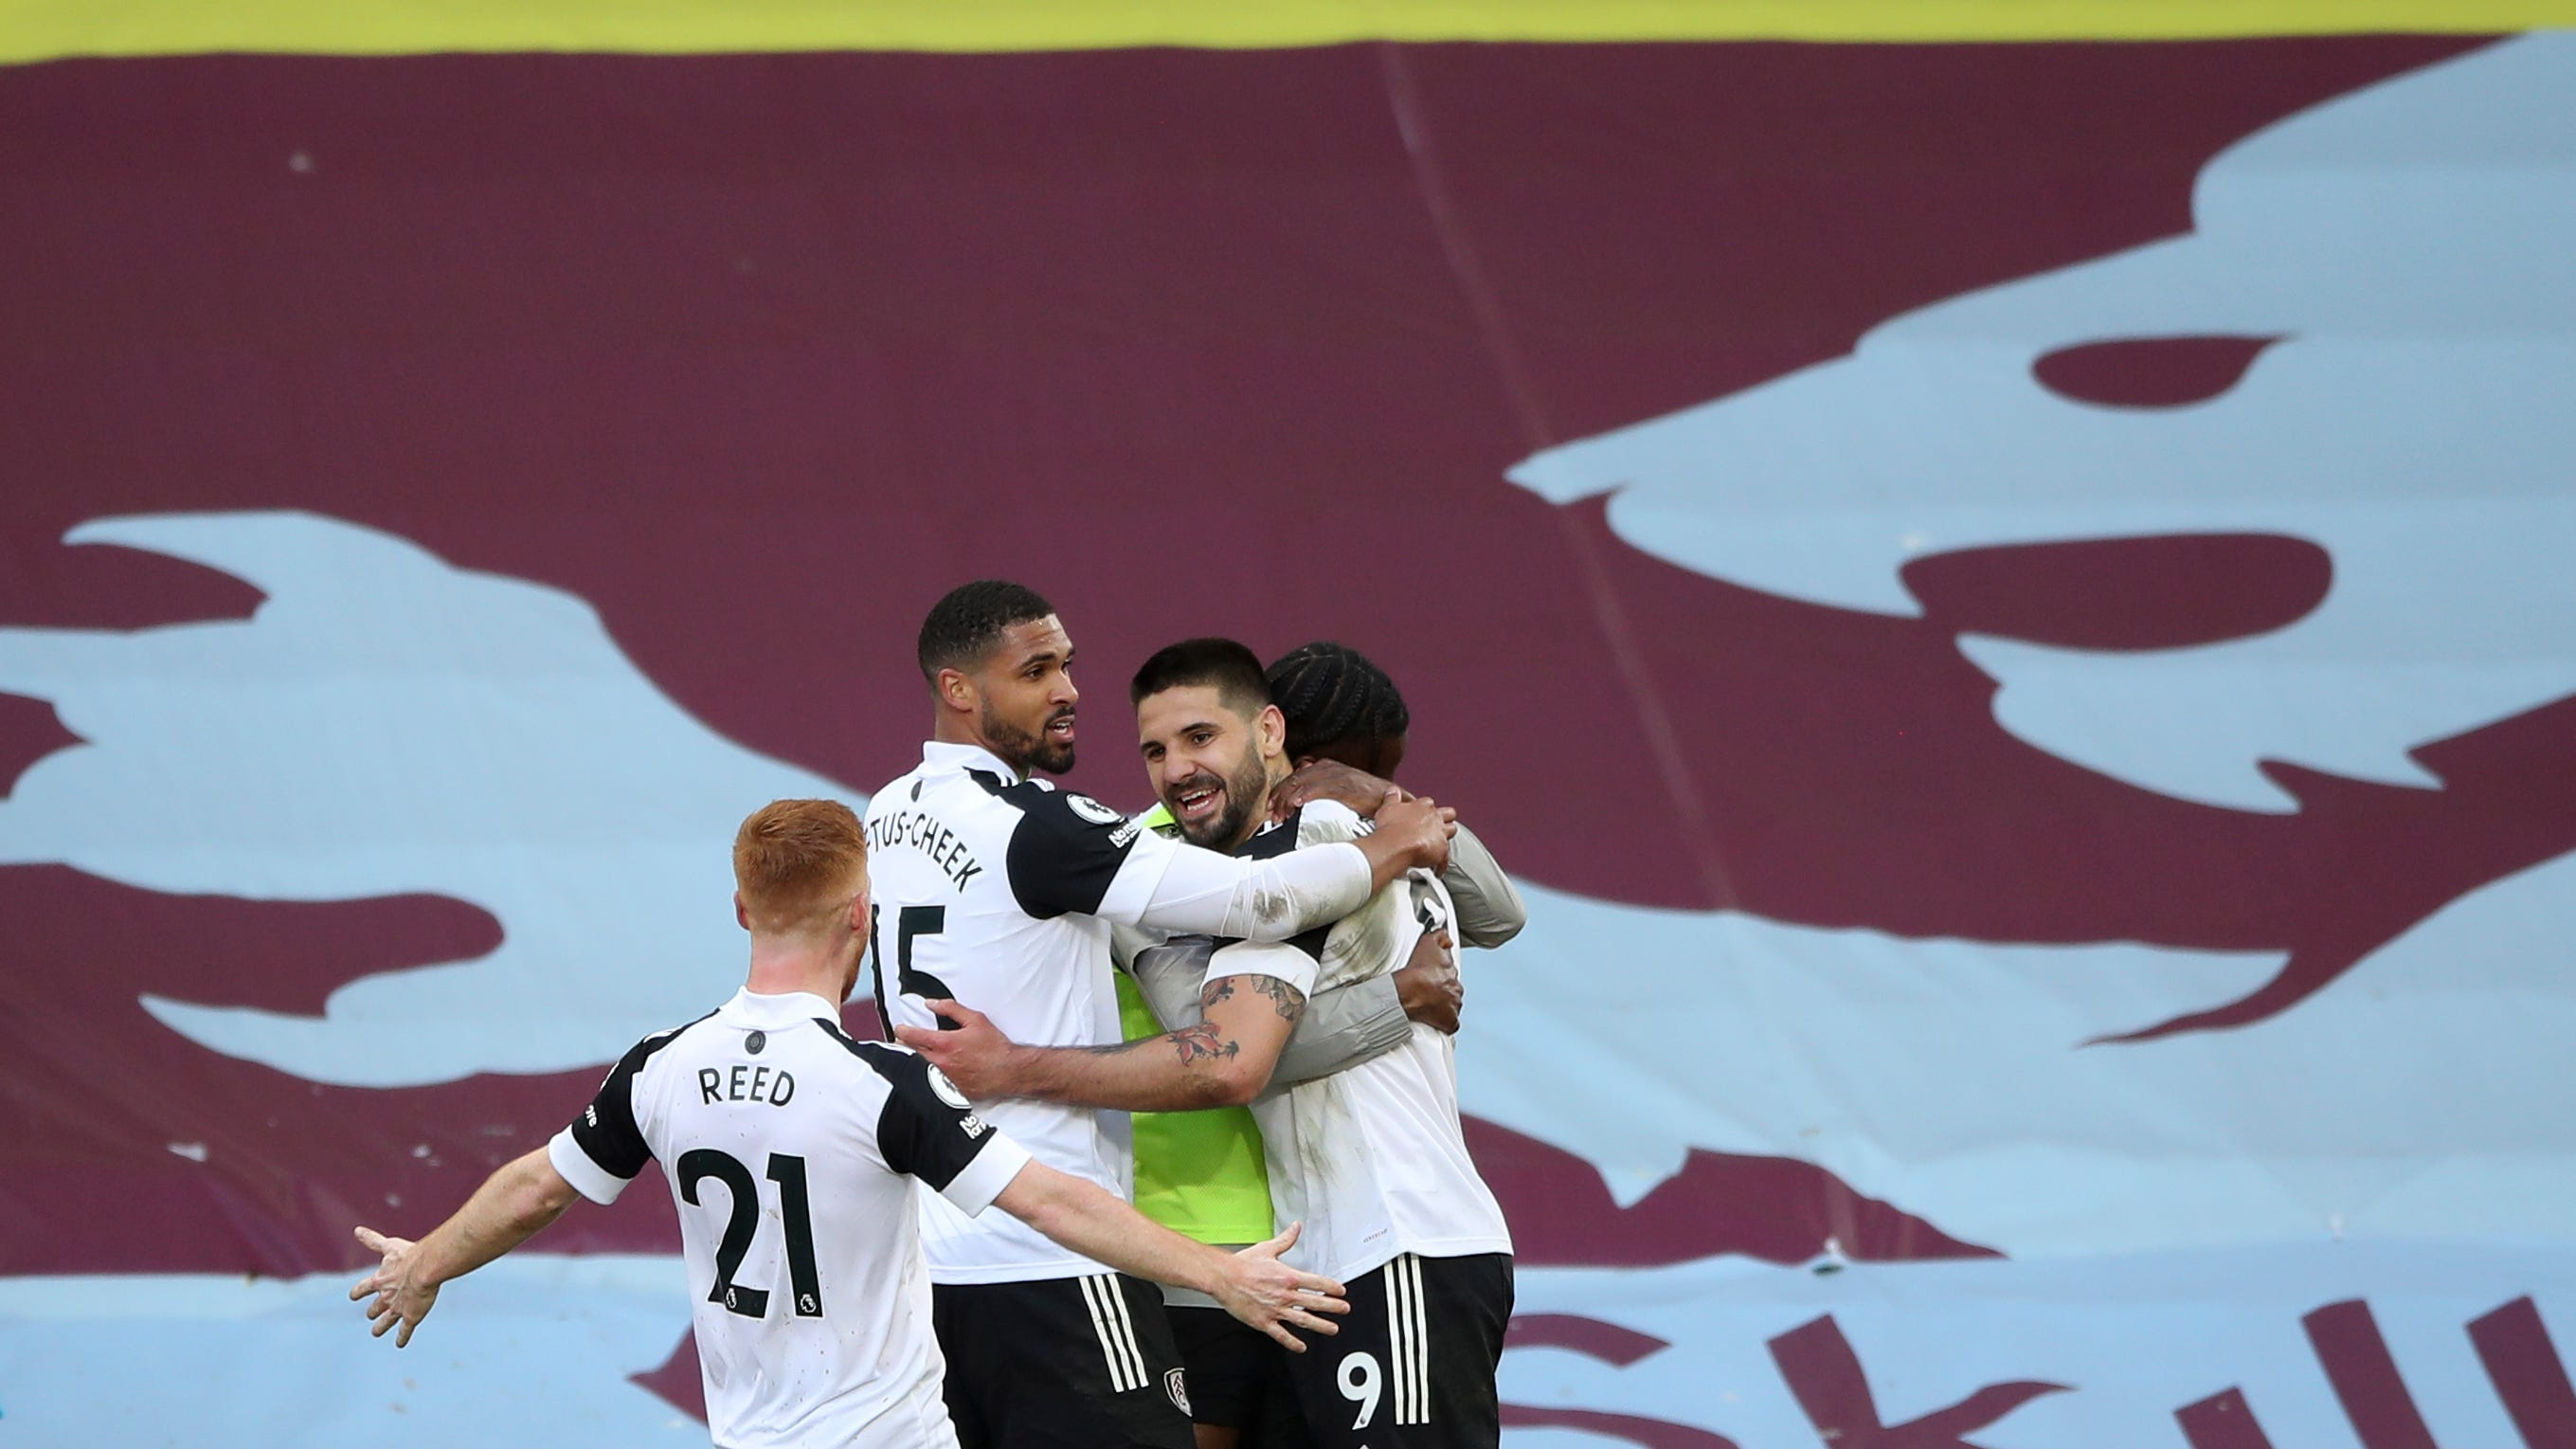 Fulham stays in EPL's bottom 3 after 3-1 loss at Aston Villa